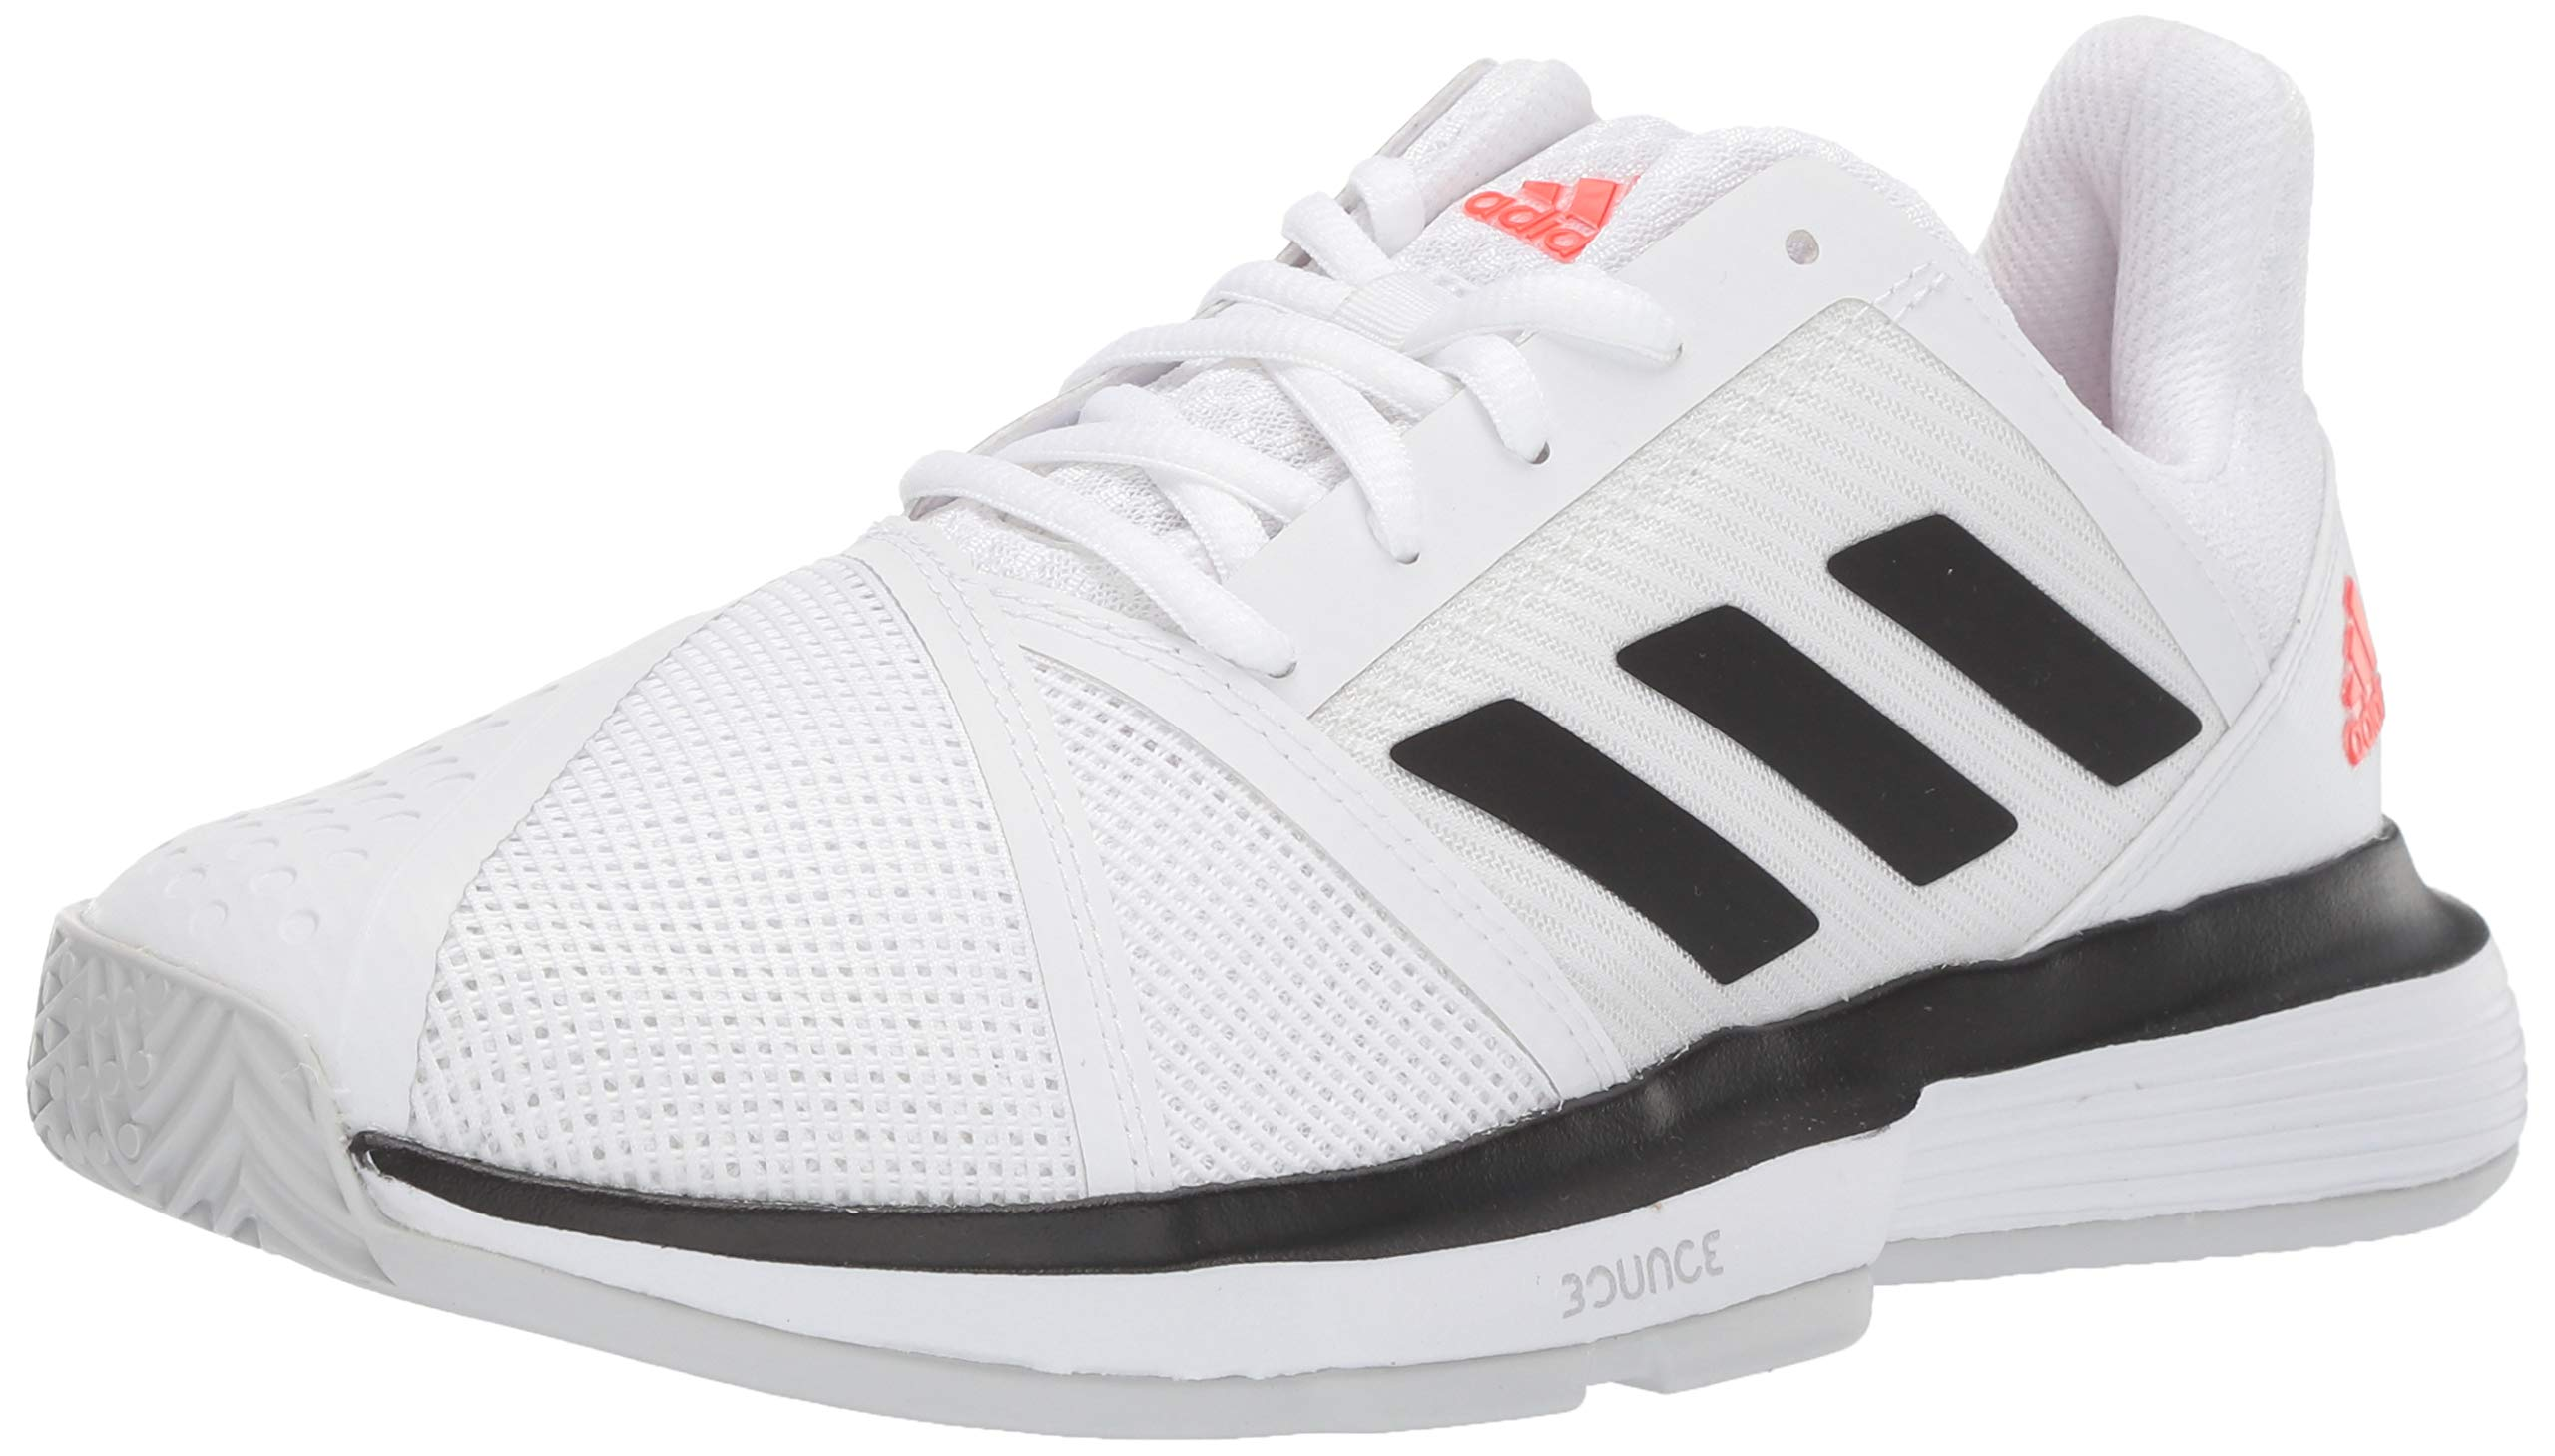 adidas Men's CourtJam Bounce Tennis Shoe, White/Black/Light Grey Heather, 6.5 M US